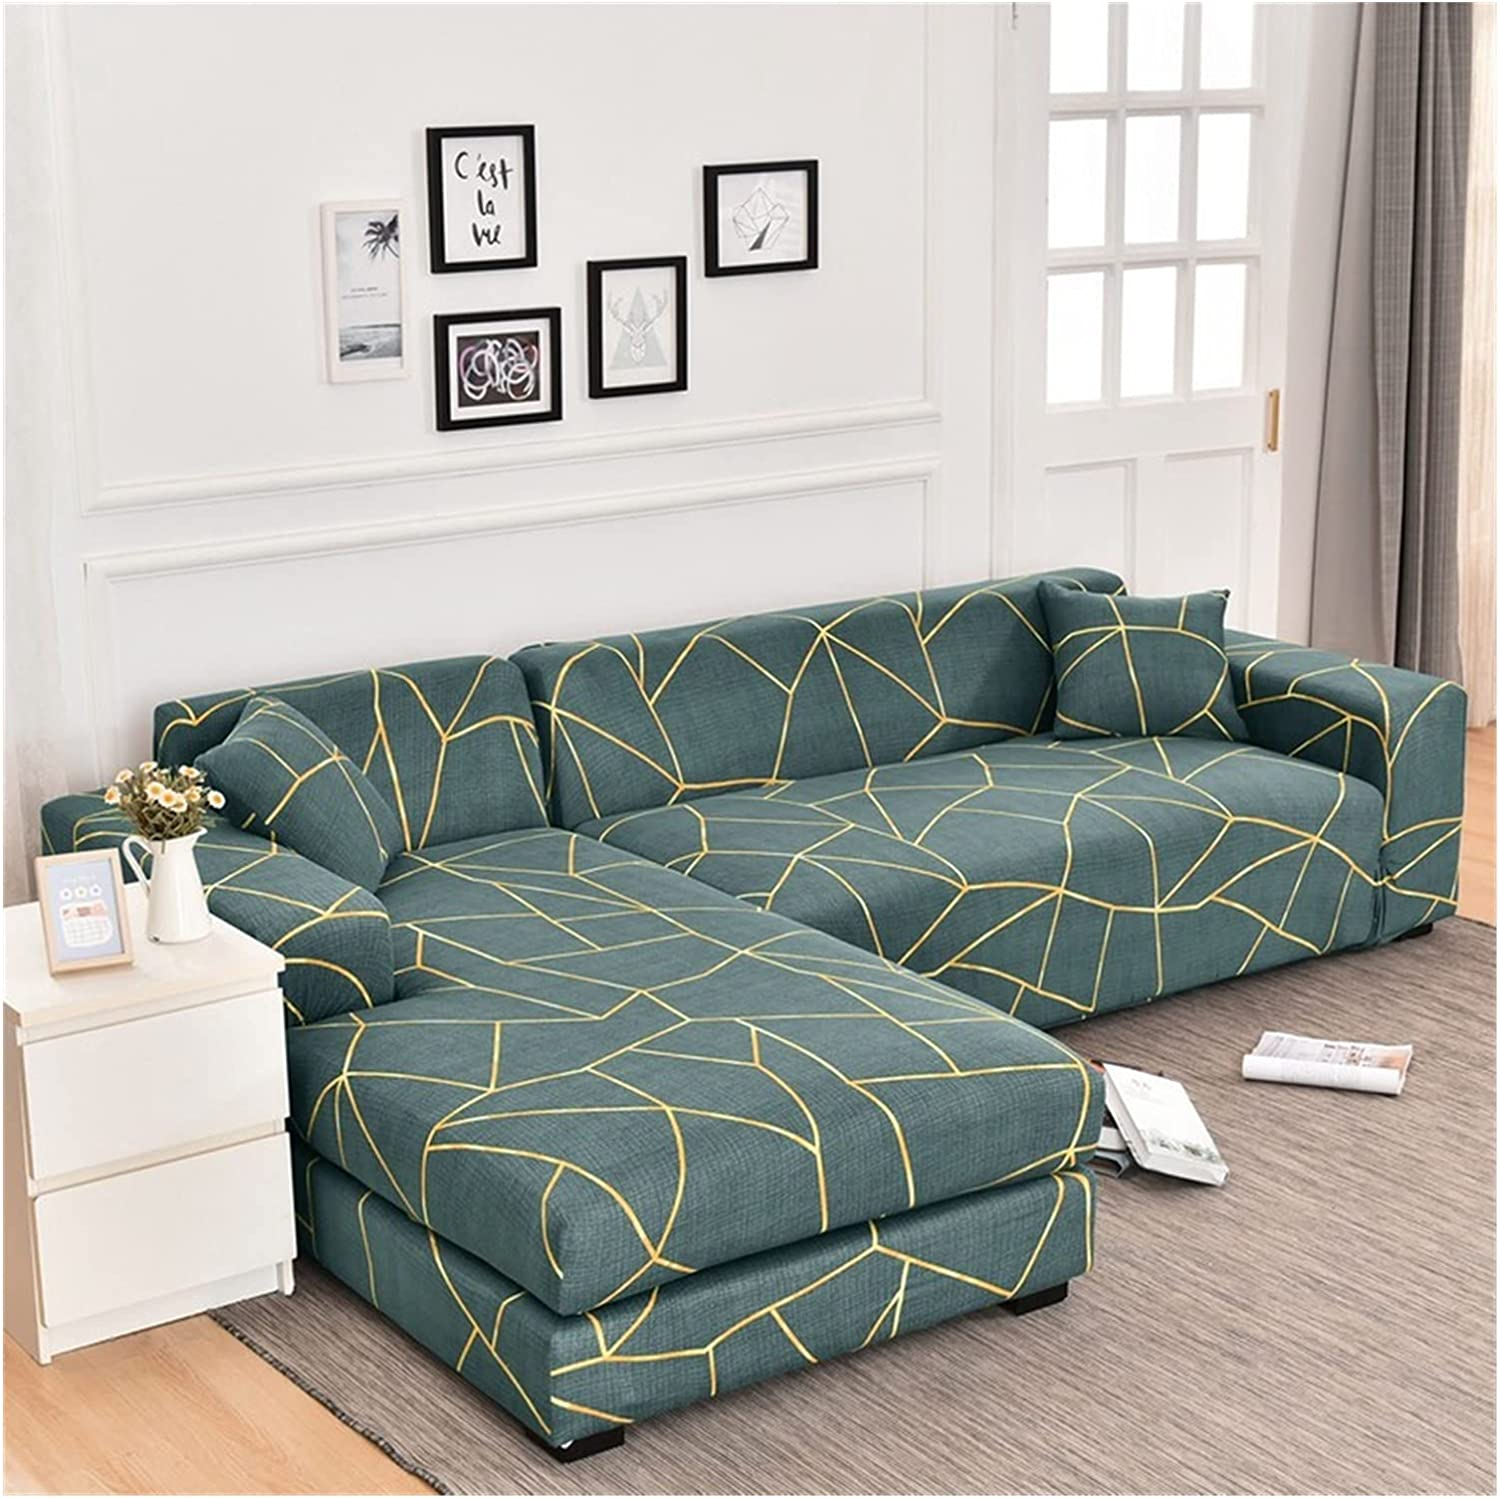 Sofa Seattle Mall Save money Cover Elastic Sectional L-Shape Slipcover Corner Couch